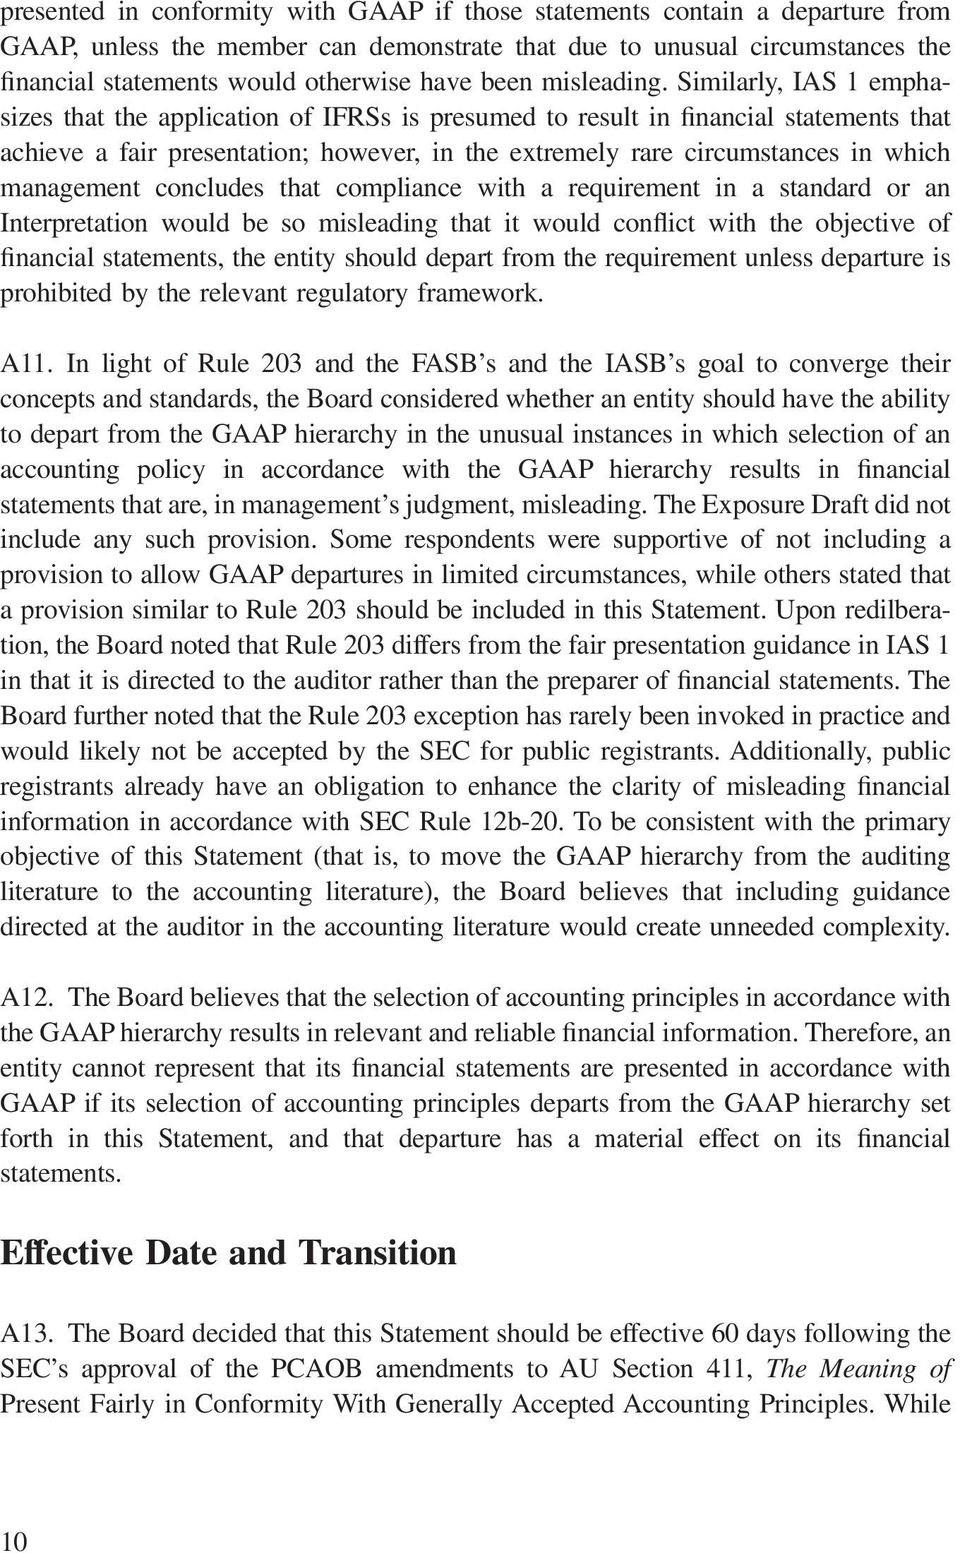 Similarly, IAS 1 emphasizes that the application of IFRSs is presumed to result in financial statements that achieve a fair presentation; however, in the extremely rare circumstances in which